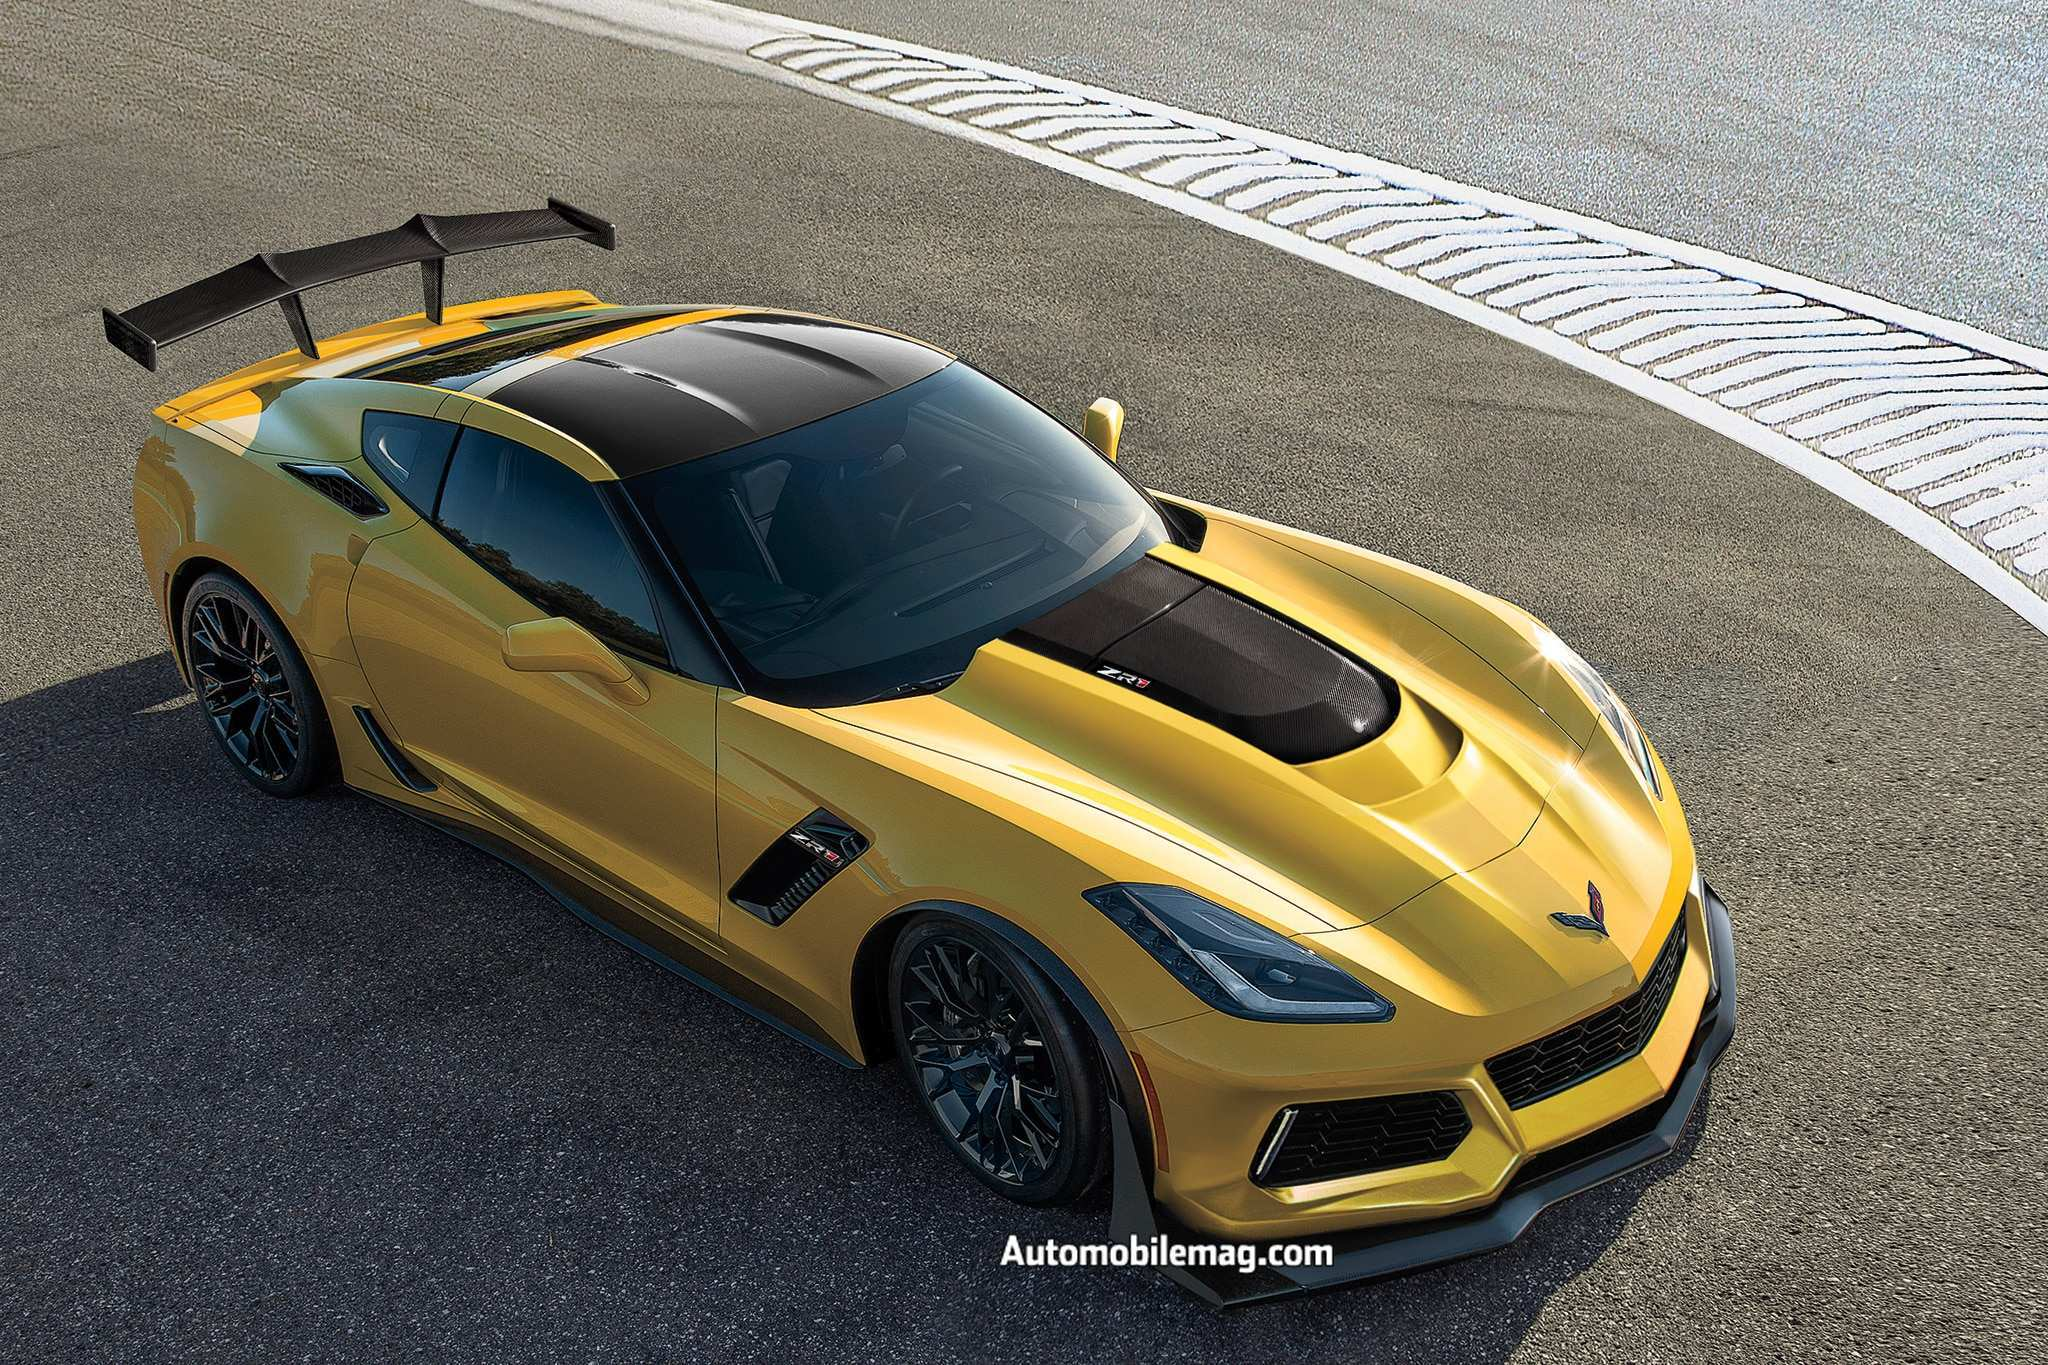 48 Gallery of 2019 Chevrolet Corvette Zr1 Price Reviews for 2019 Chevrolet Corvette Zr1 Price